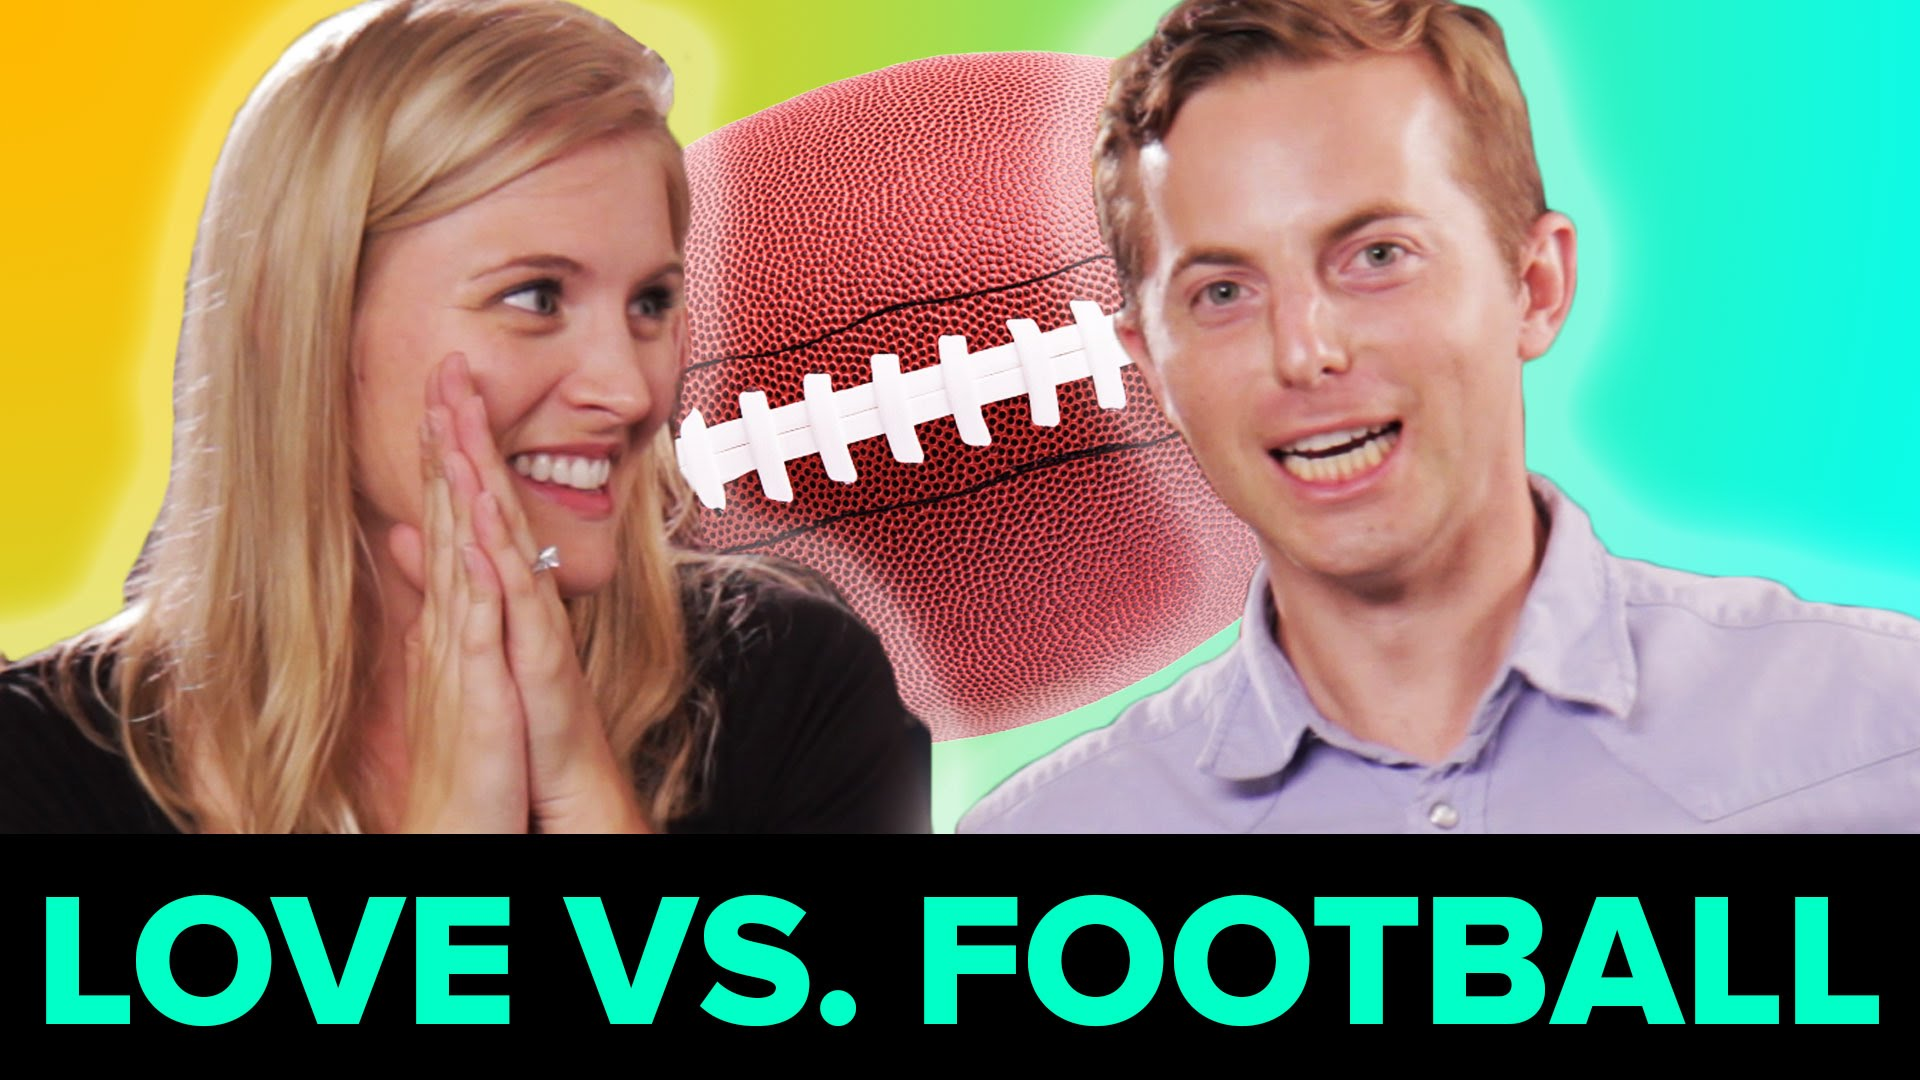 Football is one of the most popular sports! Watch this silly game show about the game.